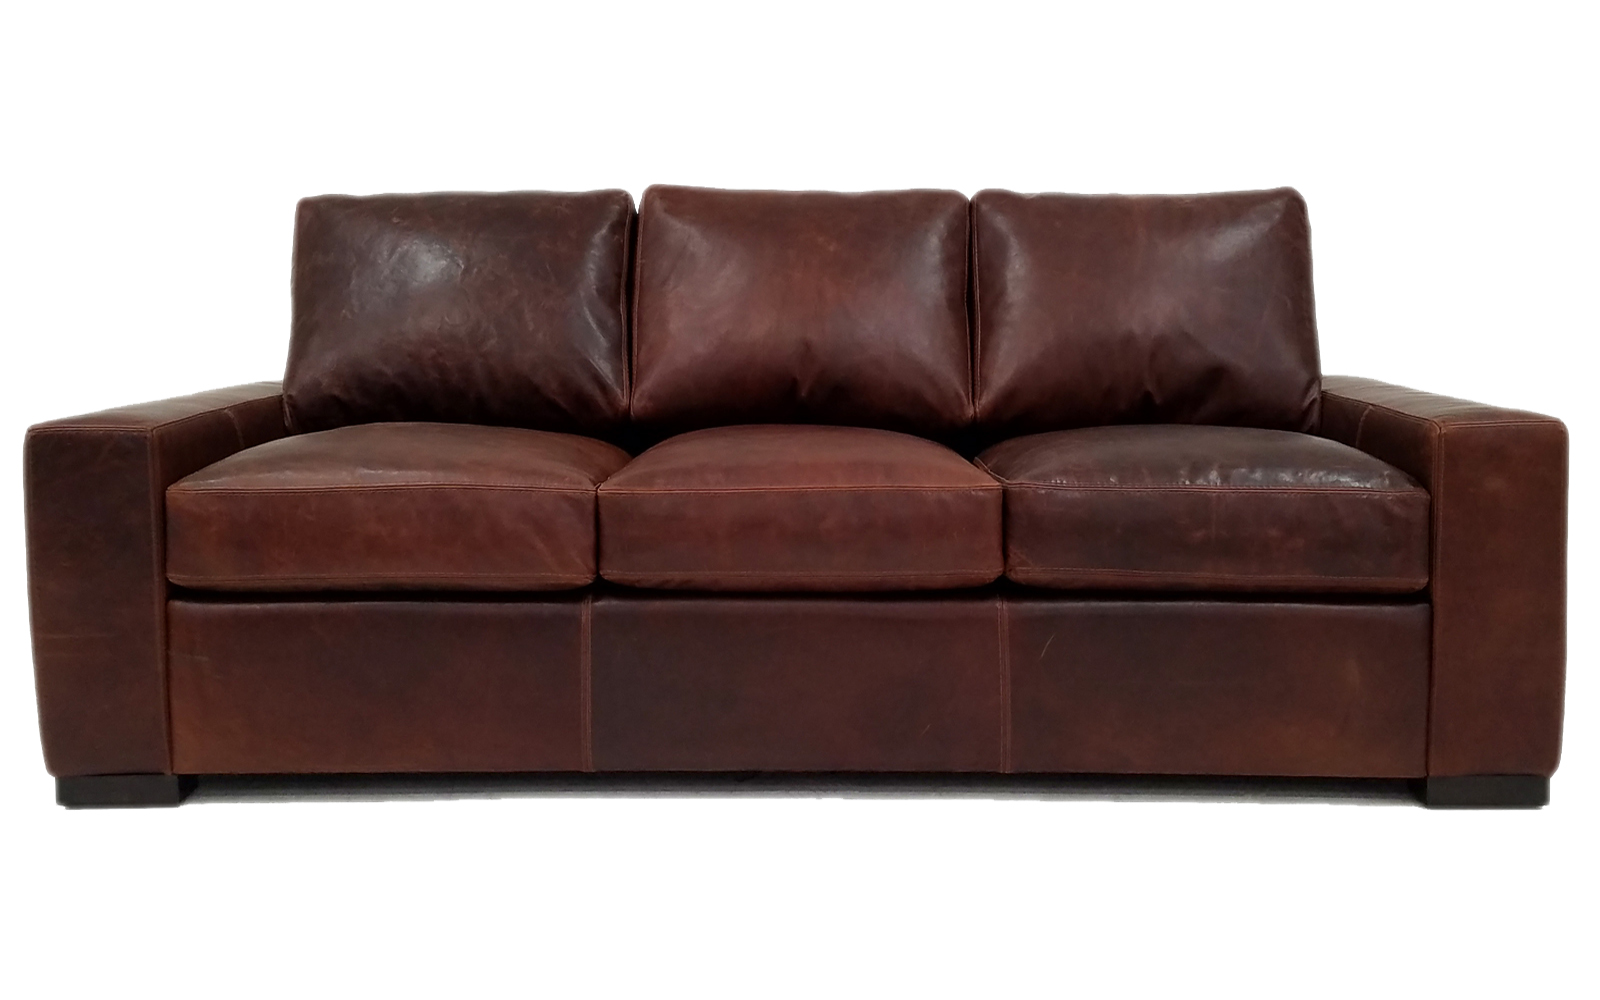 Groovy Max 3 Deluxe Or Studio Sectional Available Arizona Leather Beatyapartments Chair Design Images Beatyapartmentscom